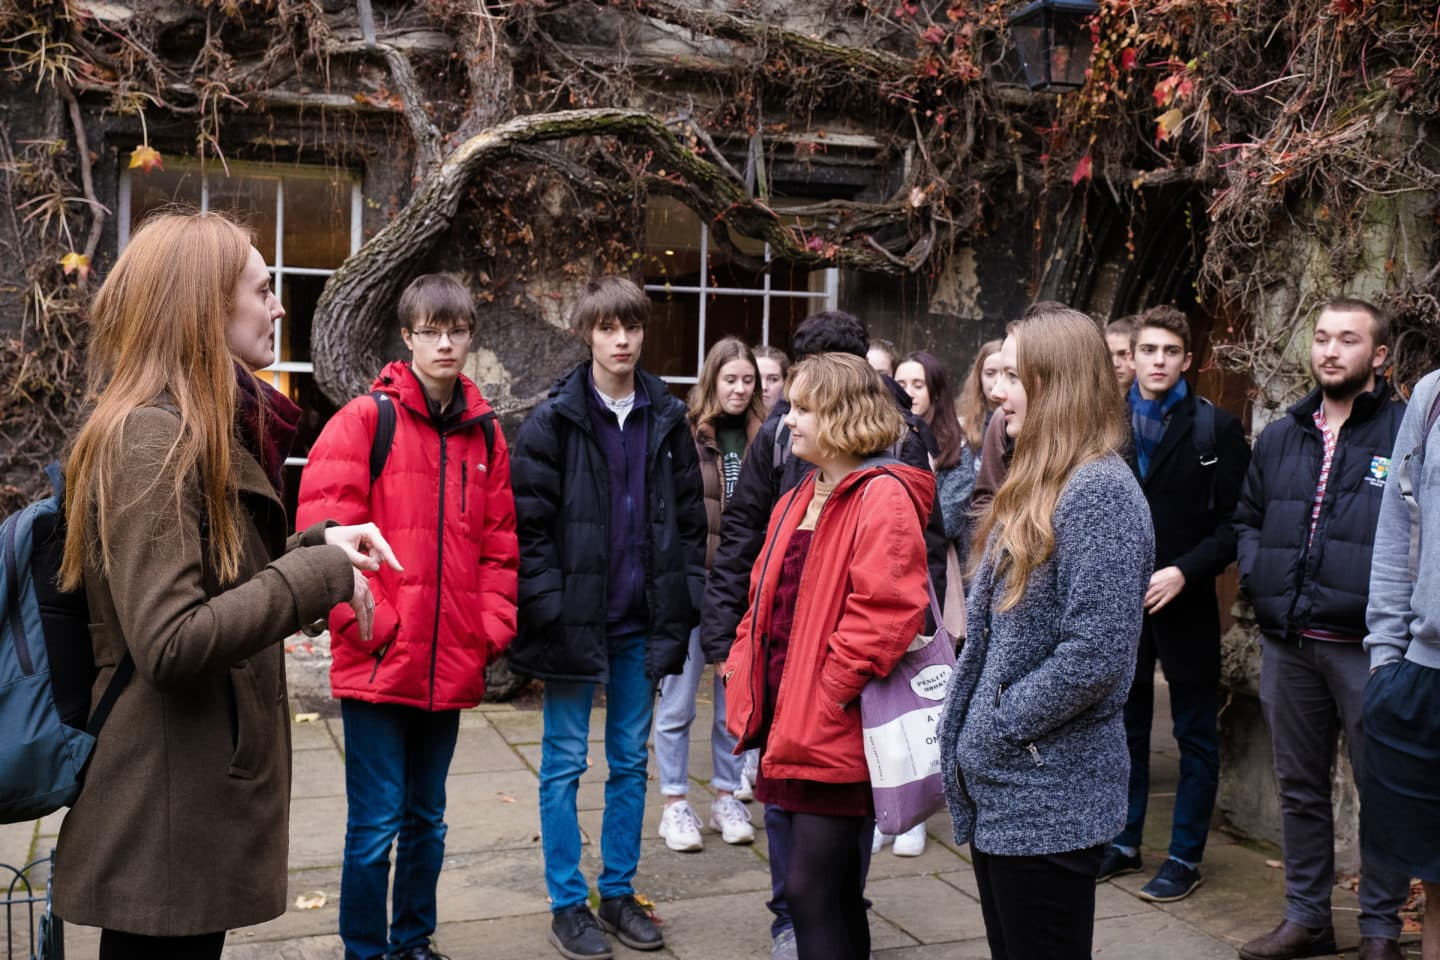 Schools Liaison Officer speaks to a school group on a tour of Lincoln College